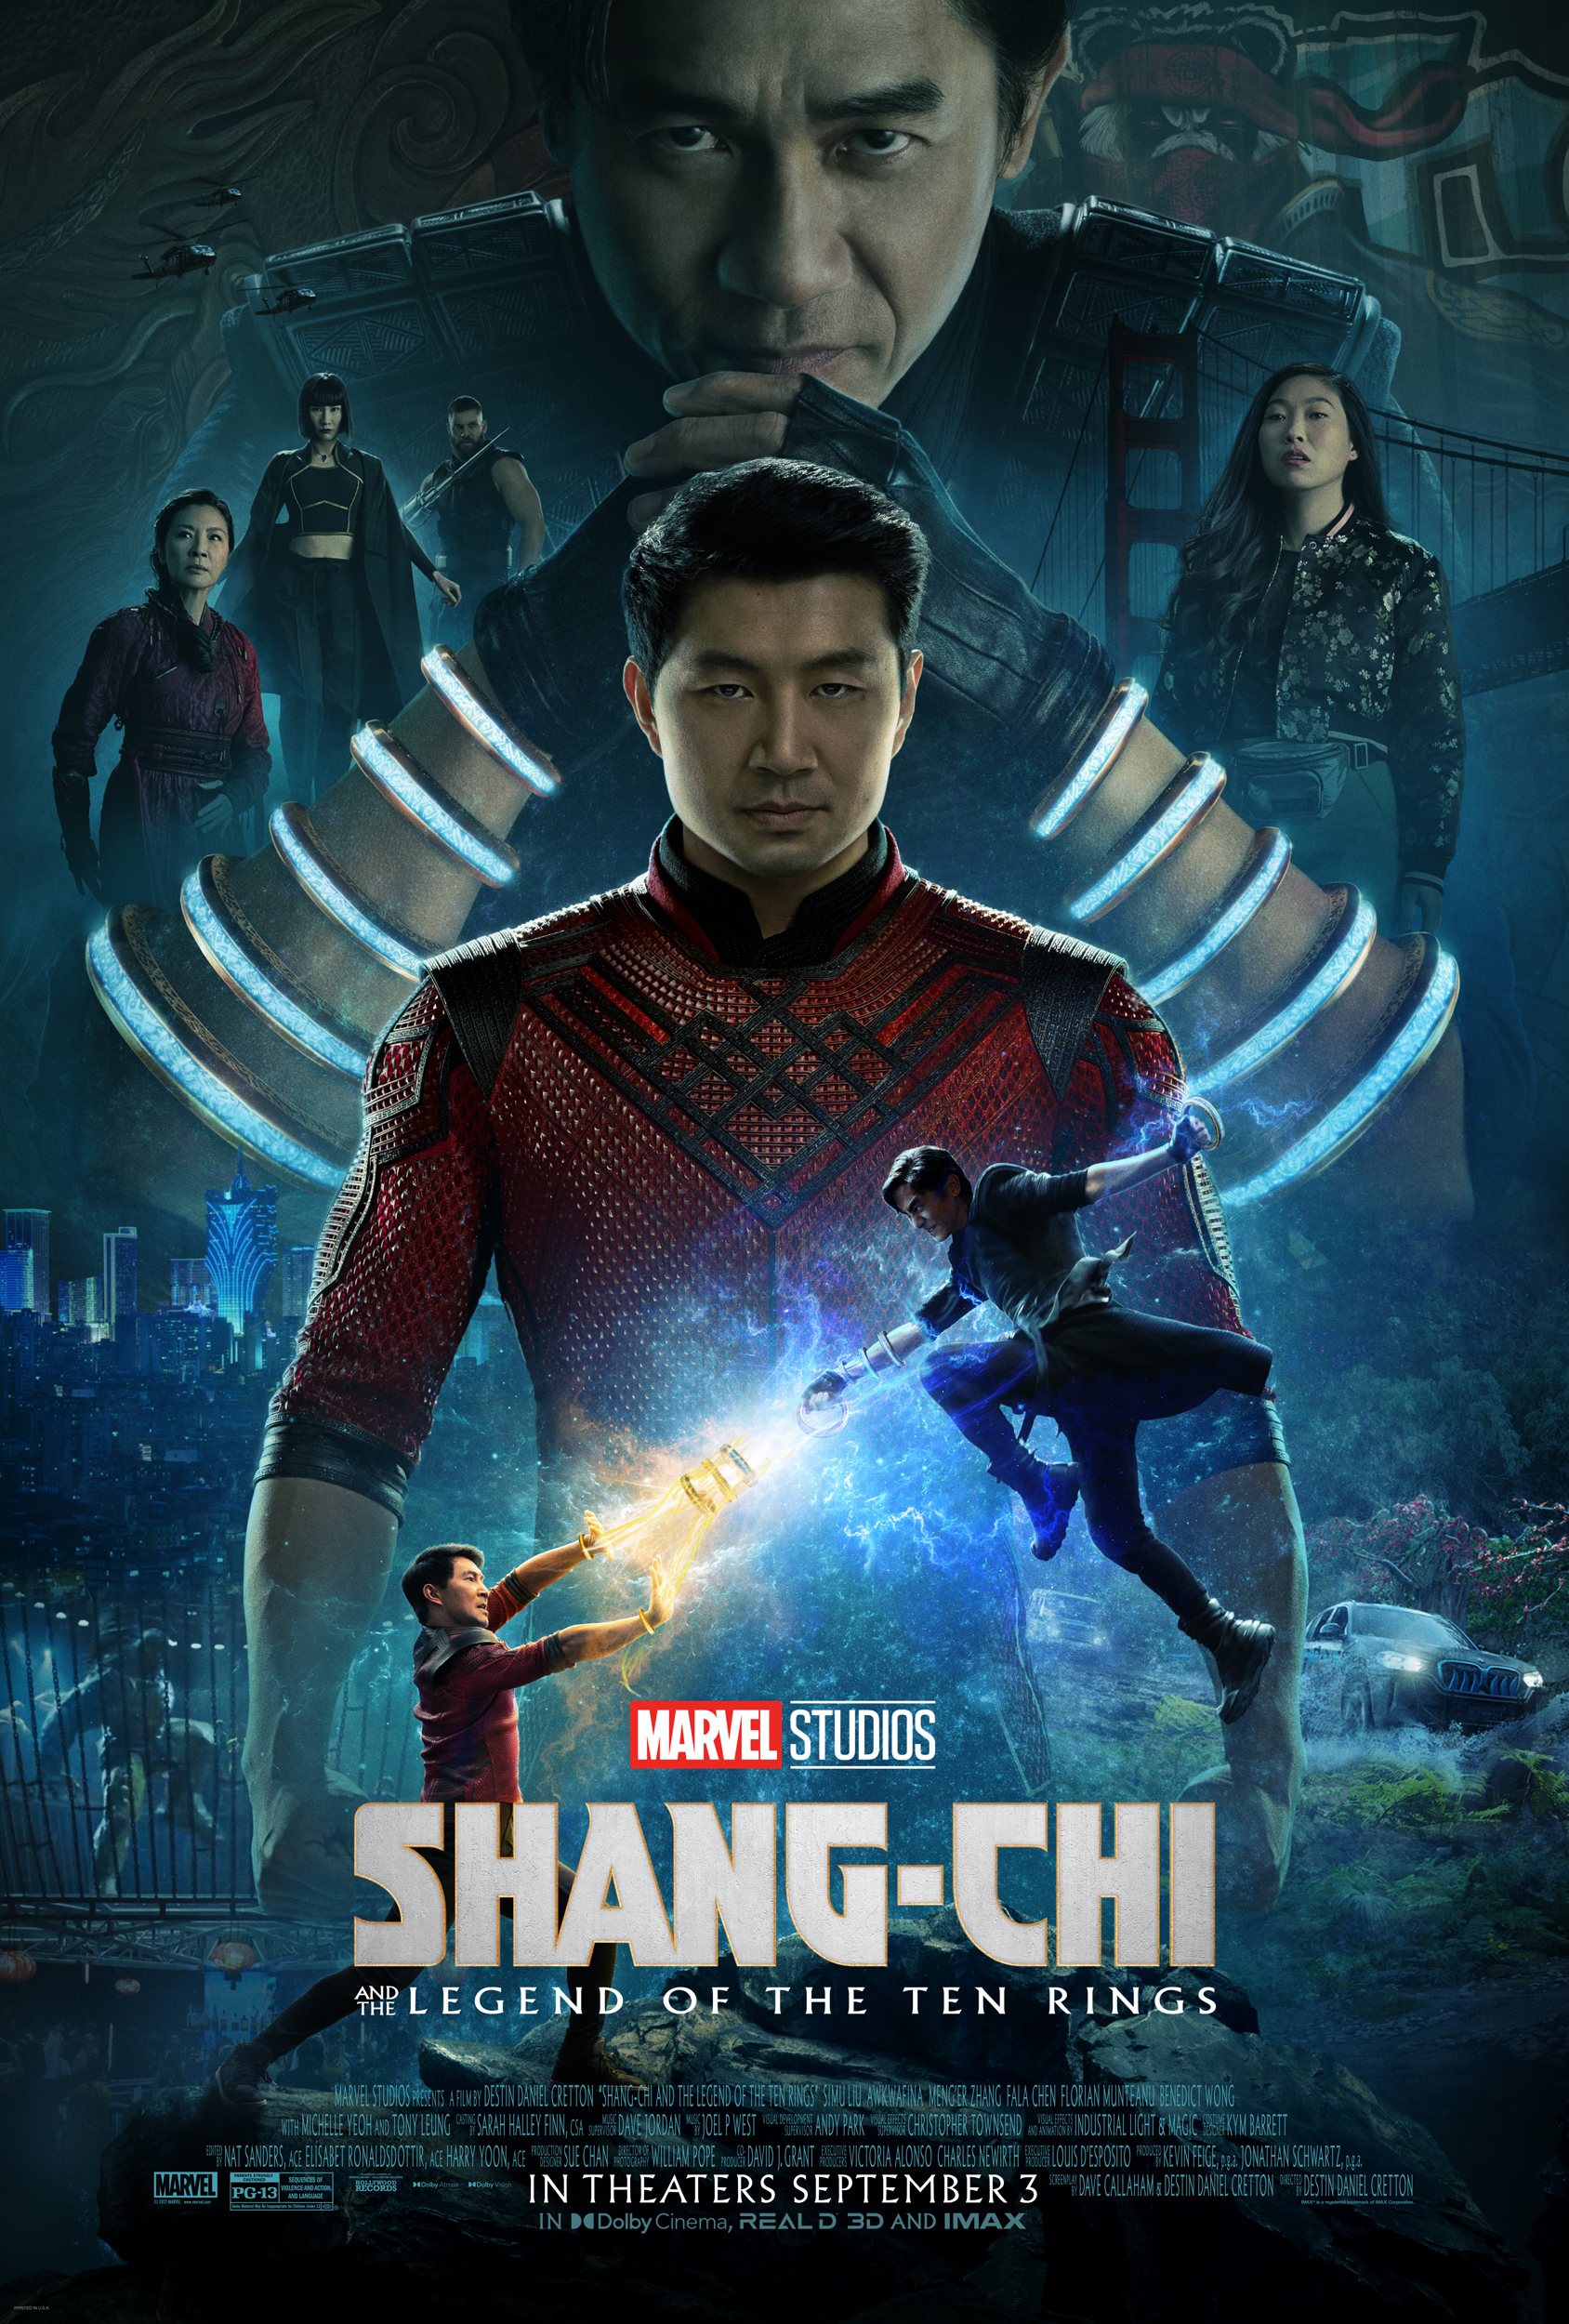 Shang-Chi and the Legend of the Ten Rings 2021 Hindi Dubbed Official Trailer 1080p HDRip 29MB Download